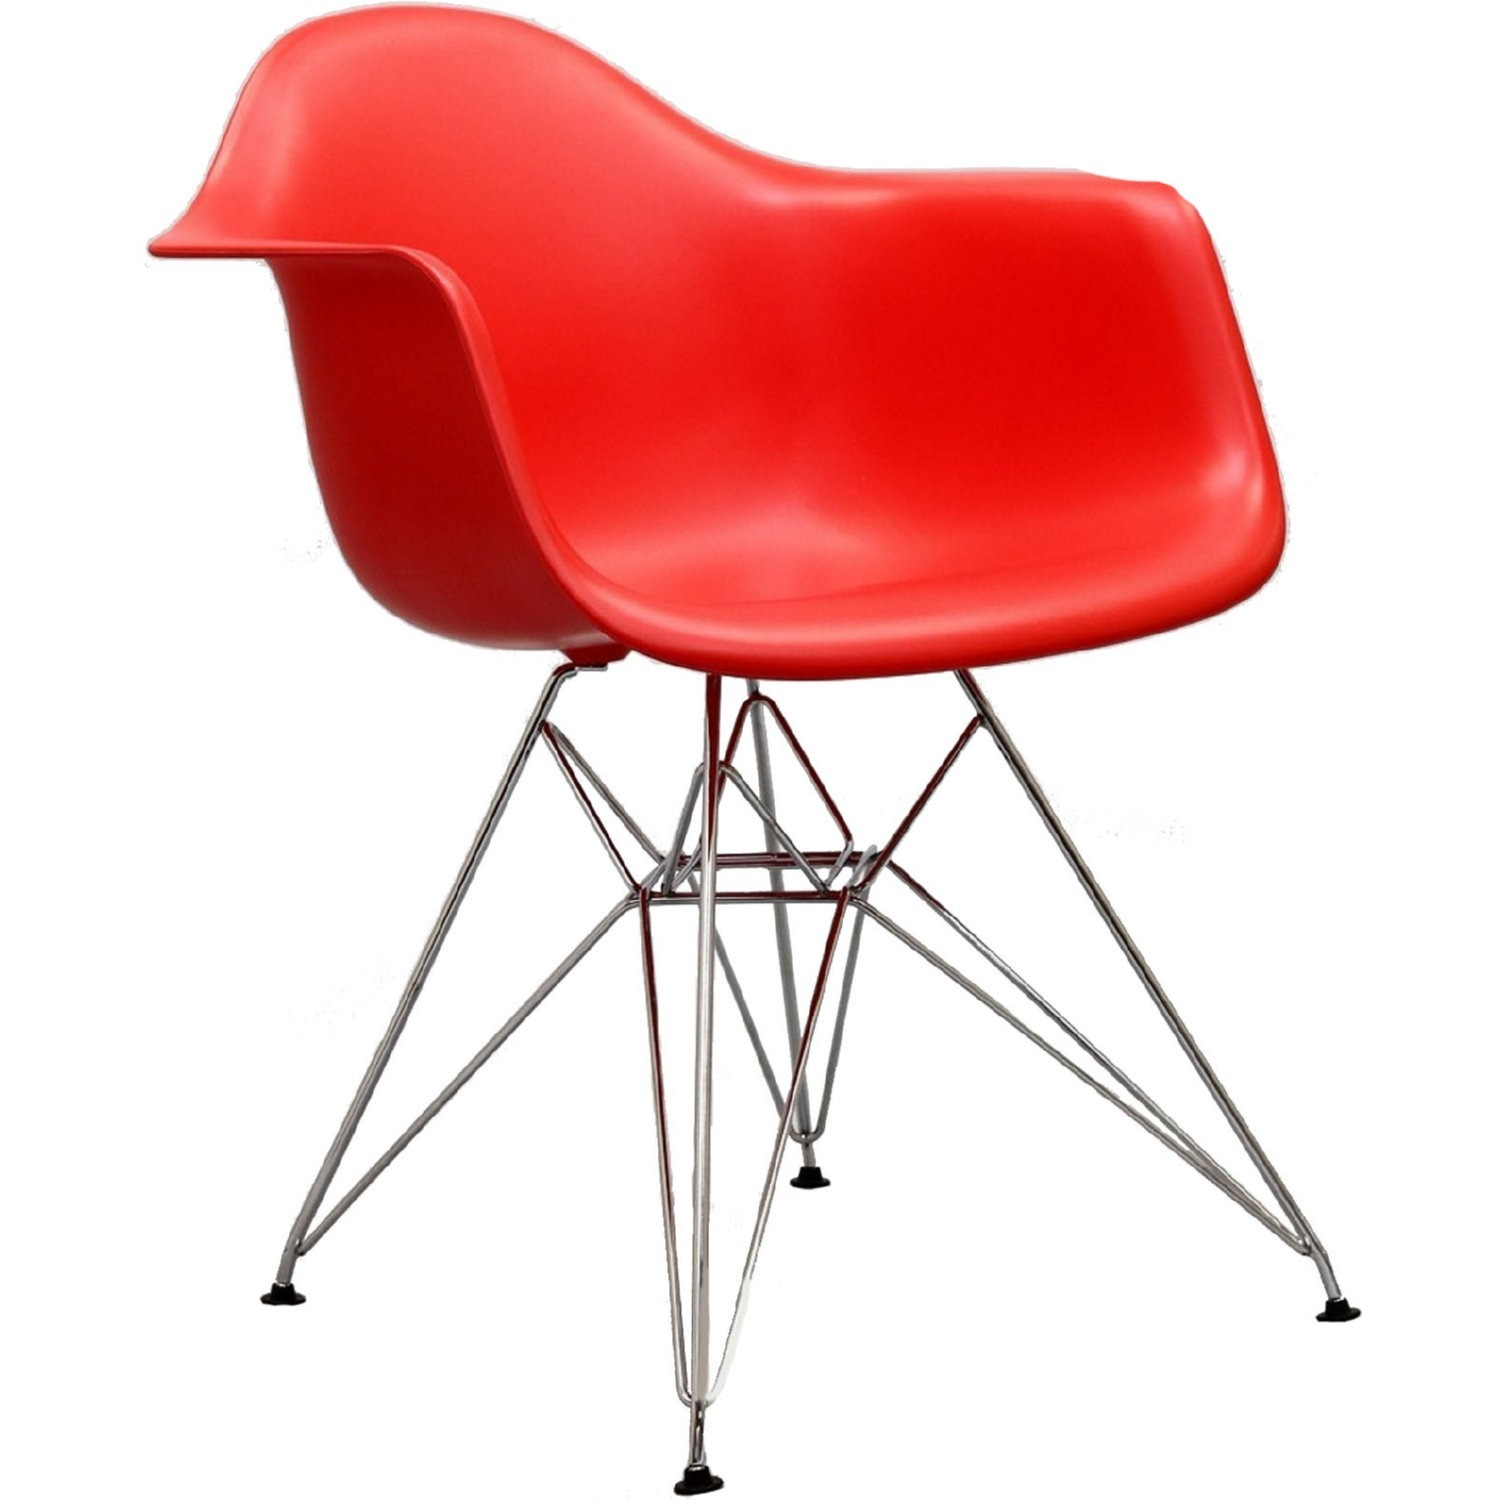 Modern Dining Chair In Red Finish W/ Steel Base - image-0